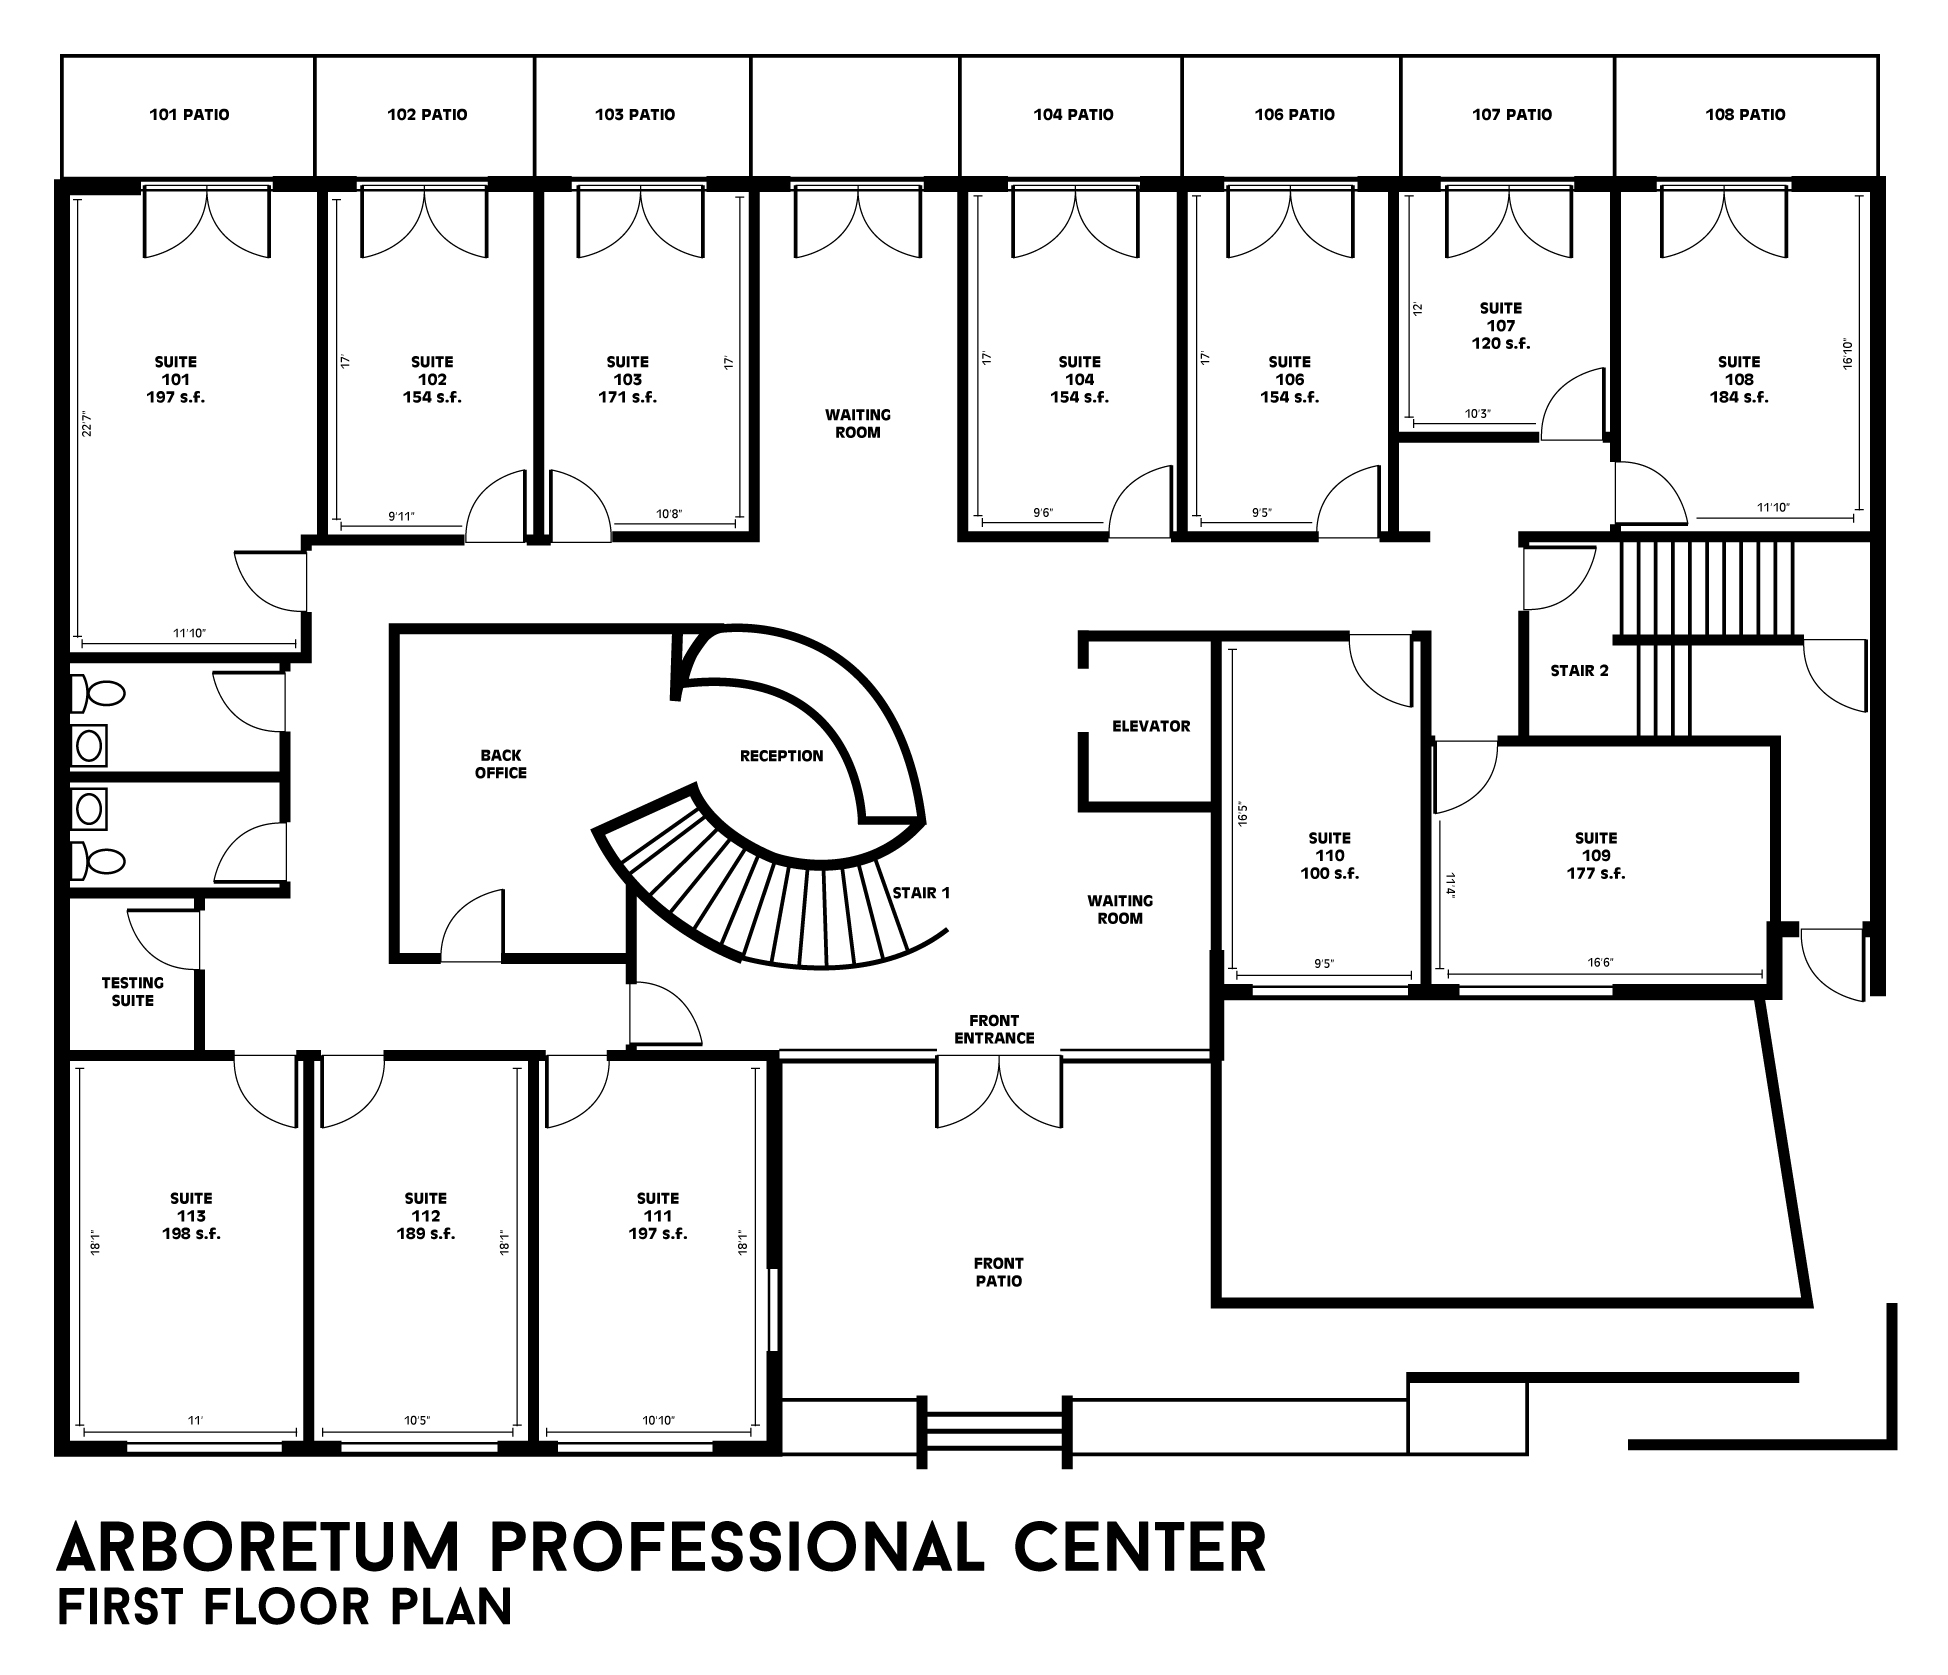 building floor plans arboretum professional center